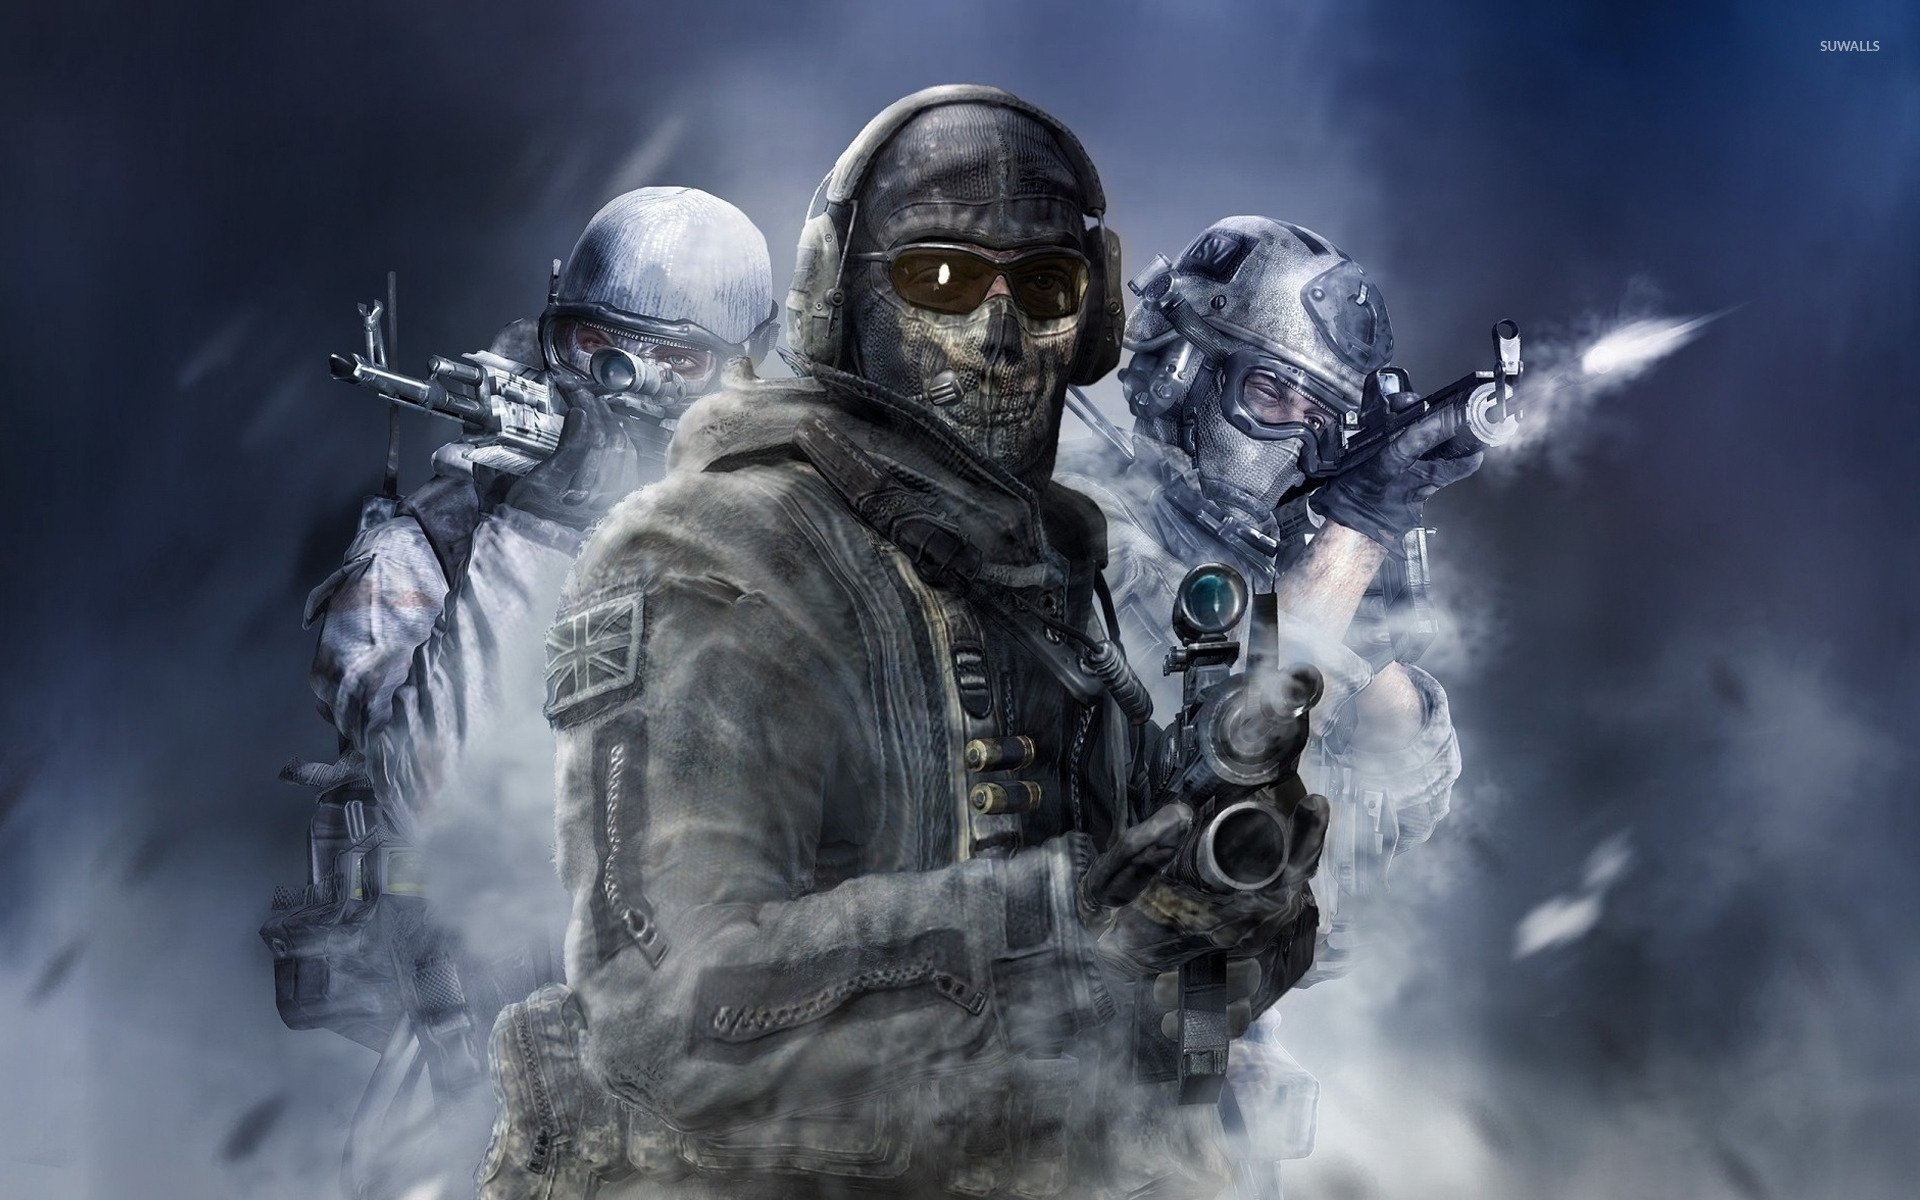 Call of Duty Ghosts Wallpaper - WallpaperSafari